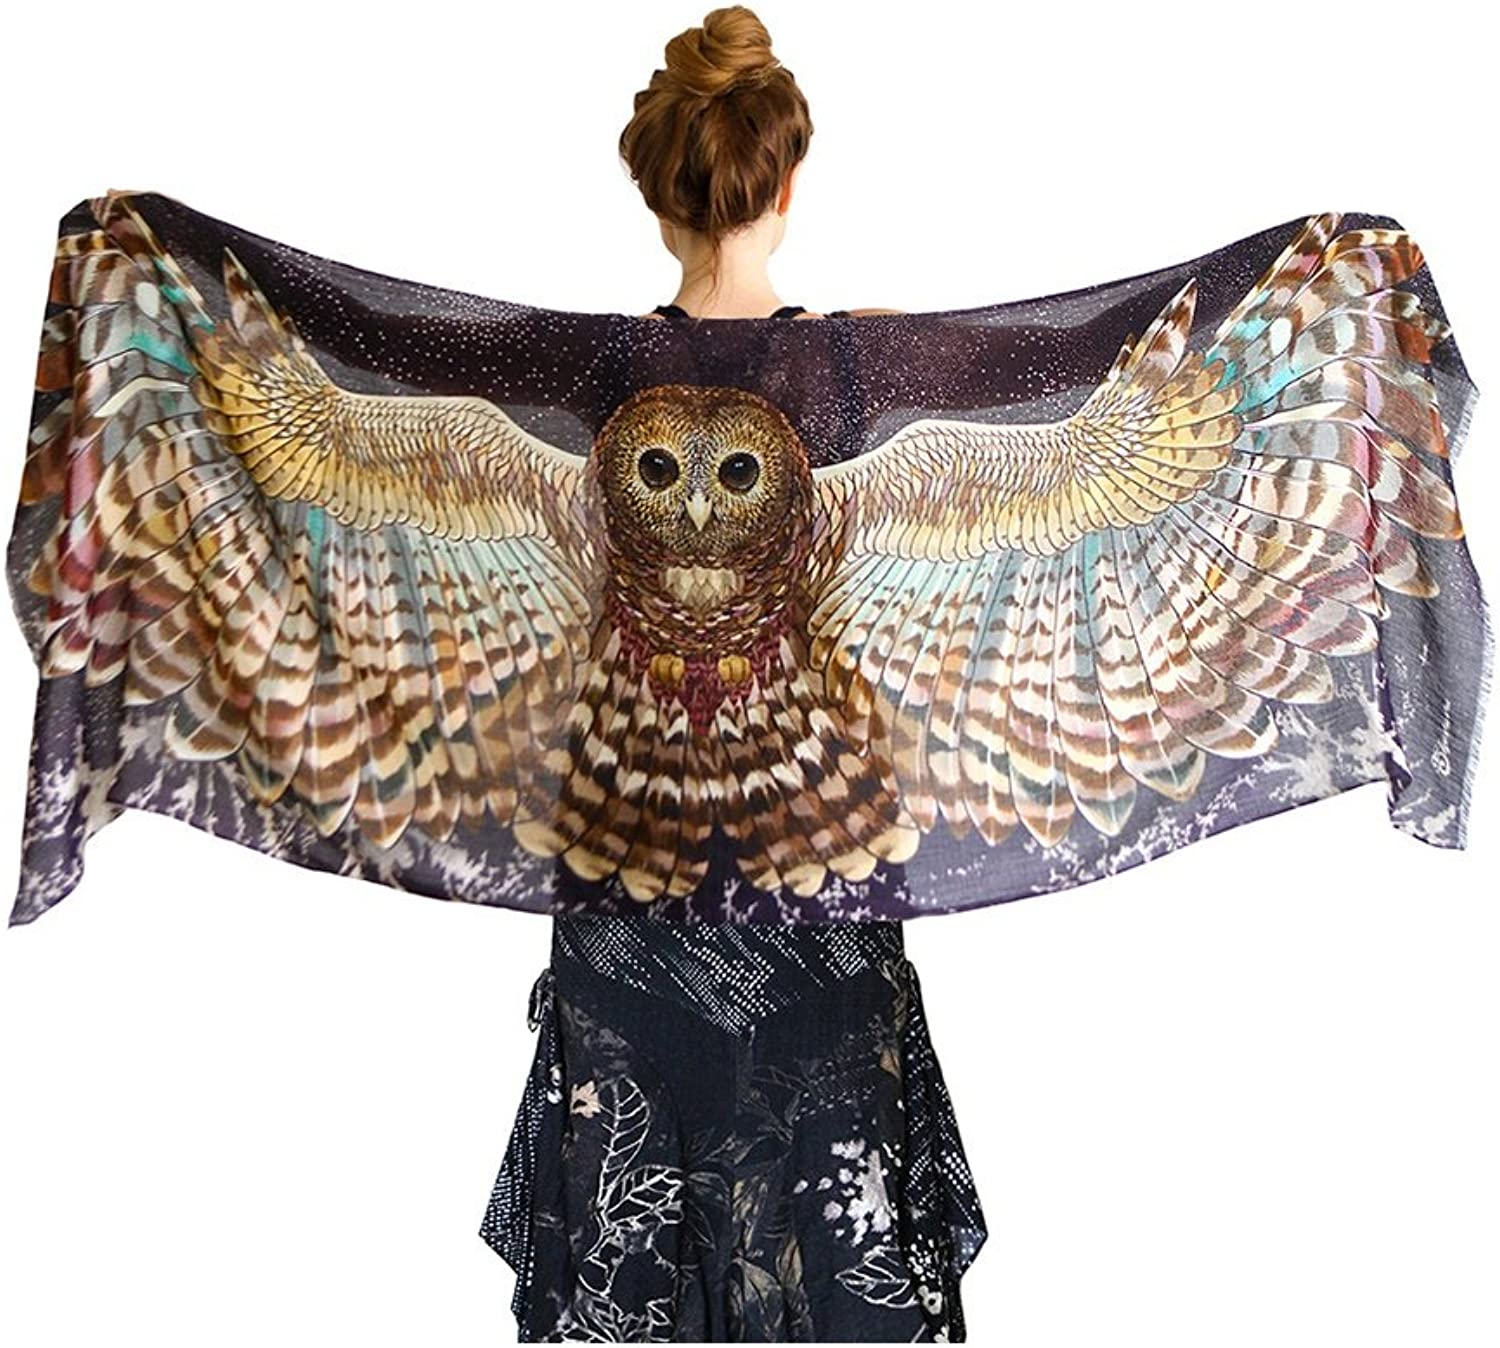 Owl Scarf. Wearable Hand Painted & Digitally Printed Night Owl Artistic Scarf